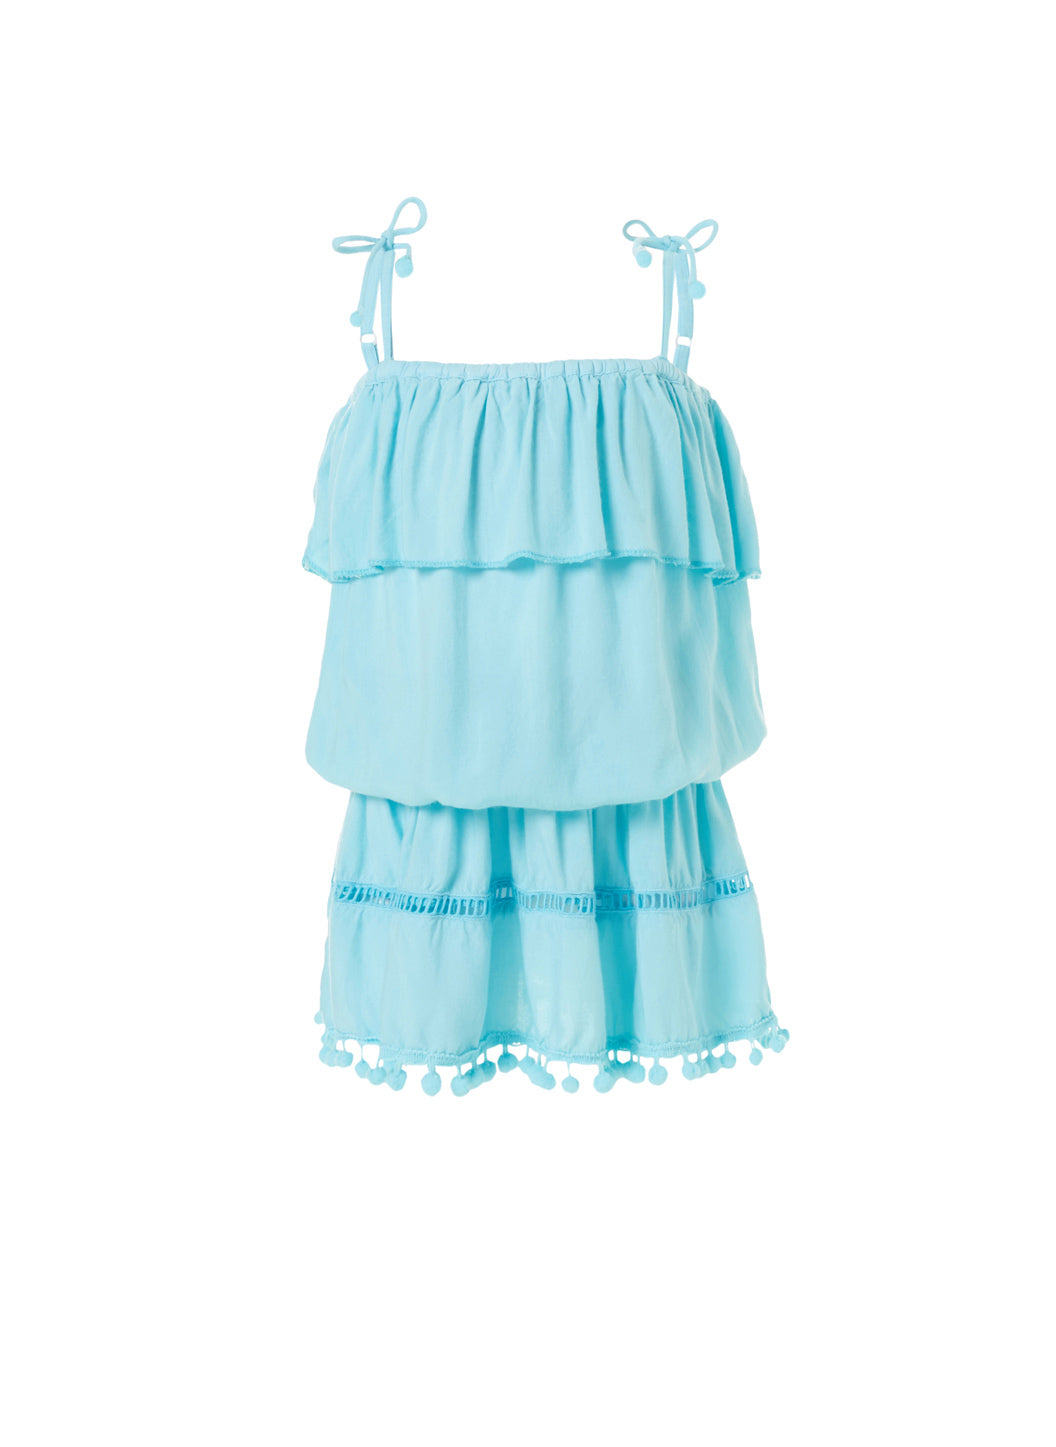 Baby Joy Sky Beach Dress - Melissa Odabash Kids Beach Dresses